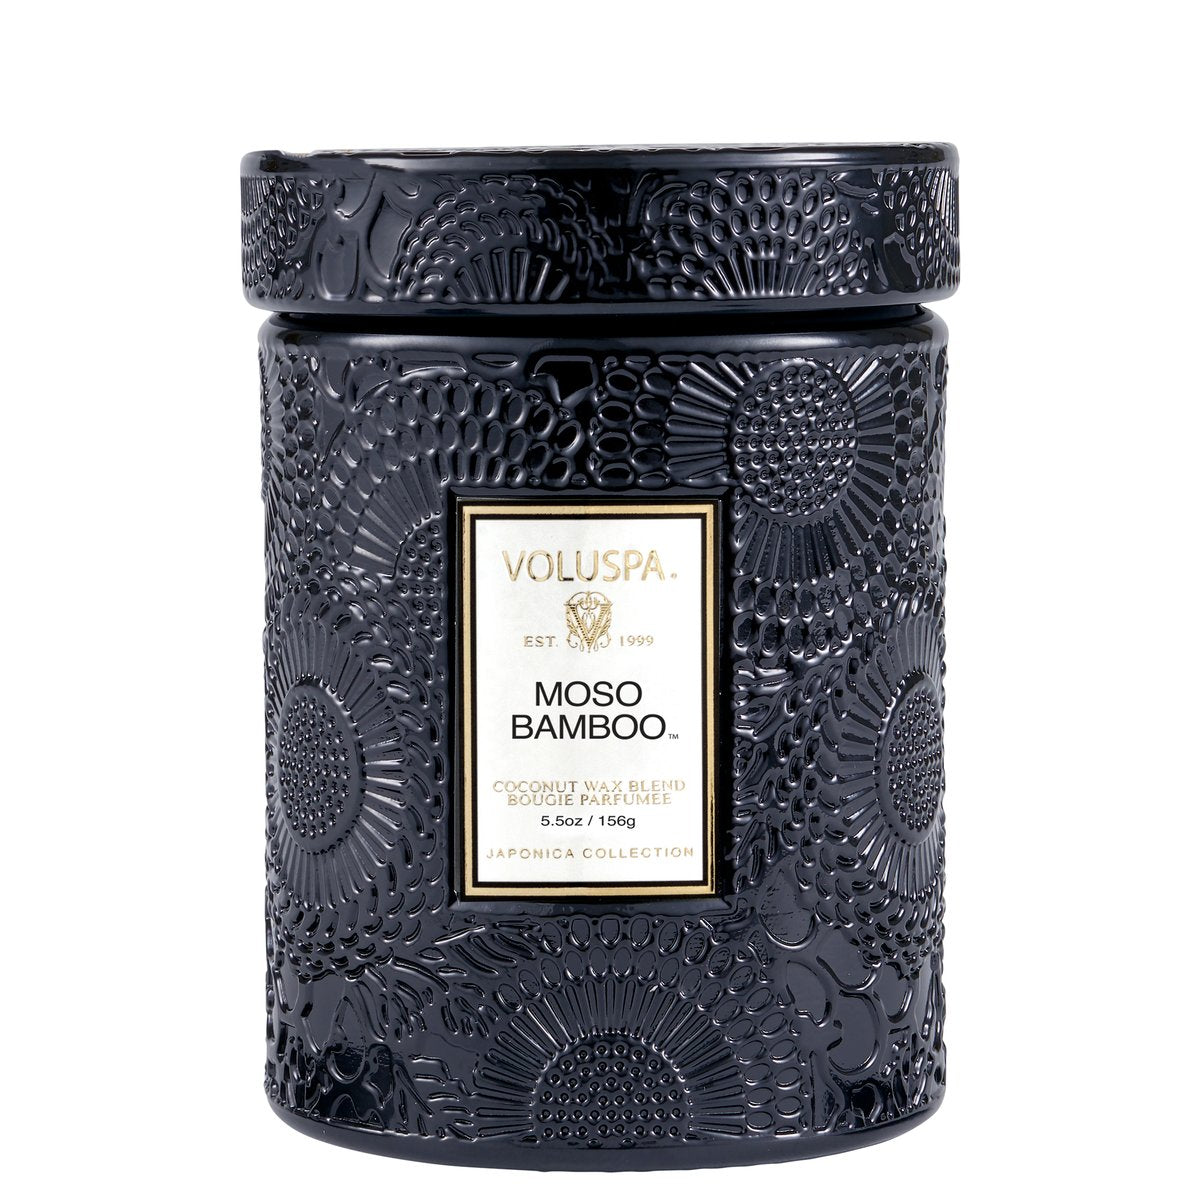 Moso Bamboo Small Jar Candle